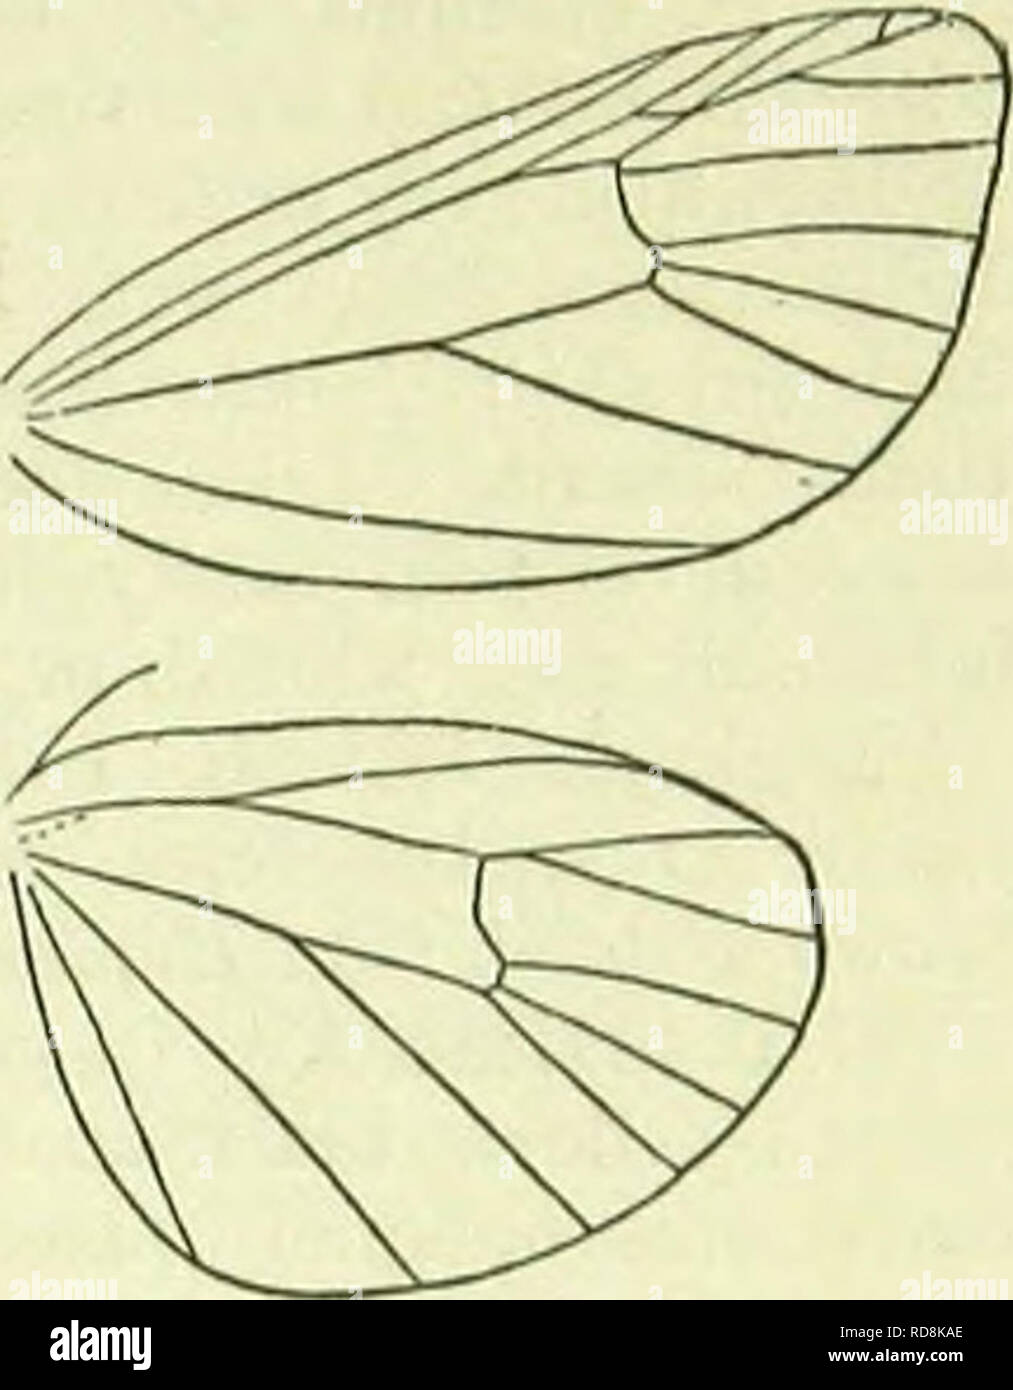 . A handbook of British lepidoptera. Lepidoptera. cosoinia] ARCTIADAE. blackish, tubercles yellowish, hairs brown ; dorsal line orange- yellow ; spiracular whitish ; head black : on grasses, Erica, etc.; 8-5. 18. Phragmatobia, Stph. Head rough-haired. Ocelli present. Antennae in <J ciliated, with longer setae at joints. Palpi moderately long, porrected, rough- haired. Thorax densely hairy above and beneath. Abdomen hairy. Femora hairy beneath, tibiae smooth-scaled. Forcwings: 7 and 8 out of 9, 10 out of 9, 11 connected with 9. Hindwings: 3 and 4 sometimes connate, 5 approximated, 6 and 7 co - Stock Image